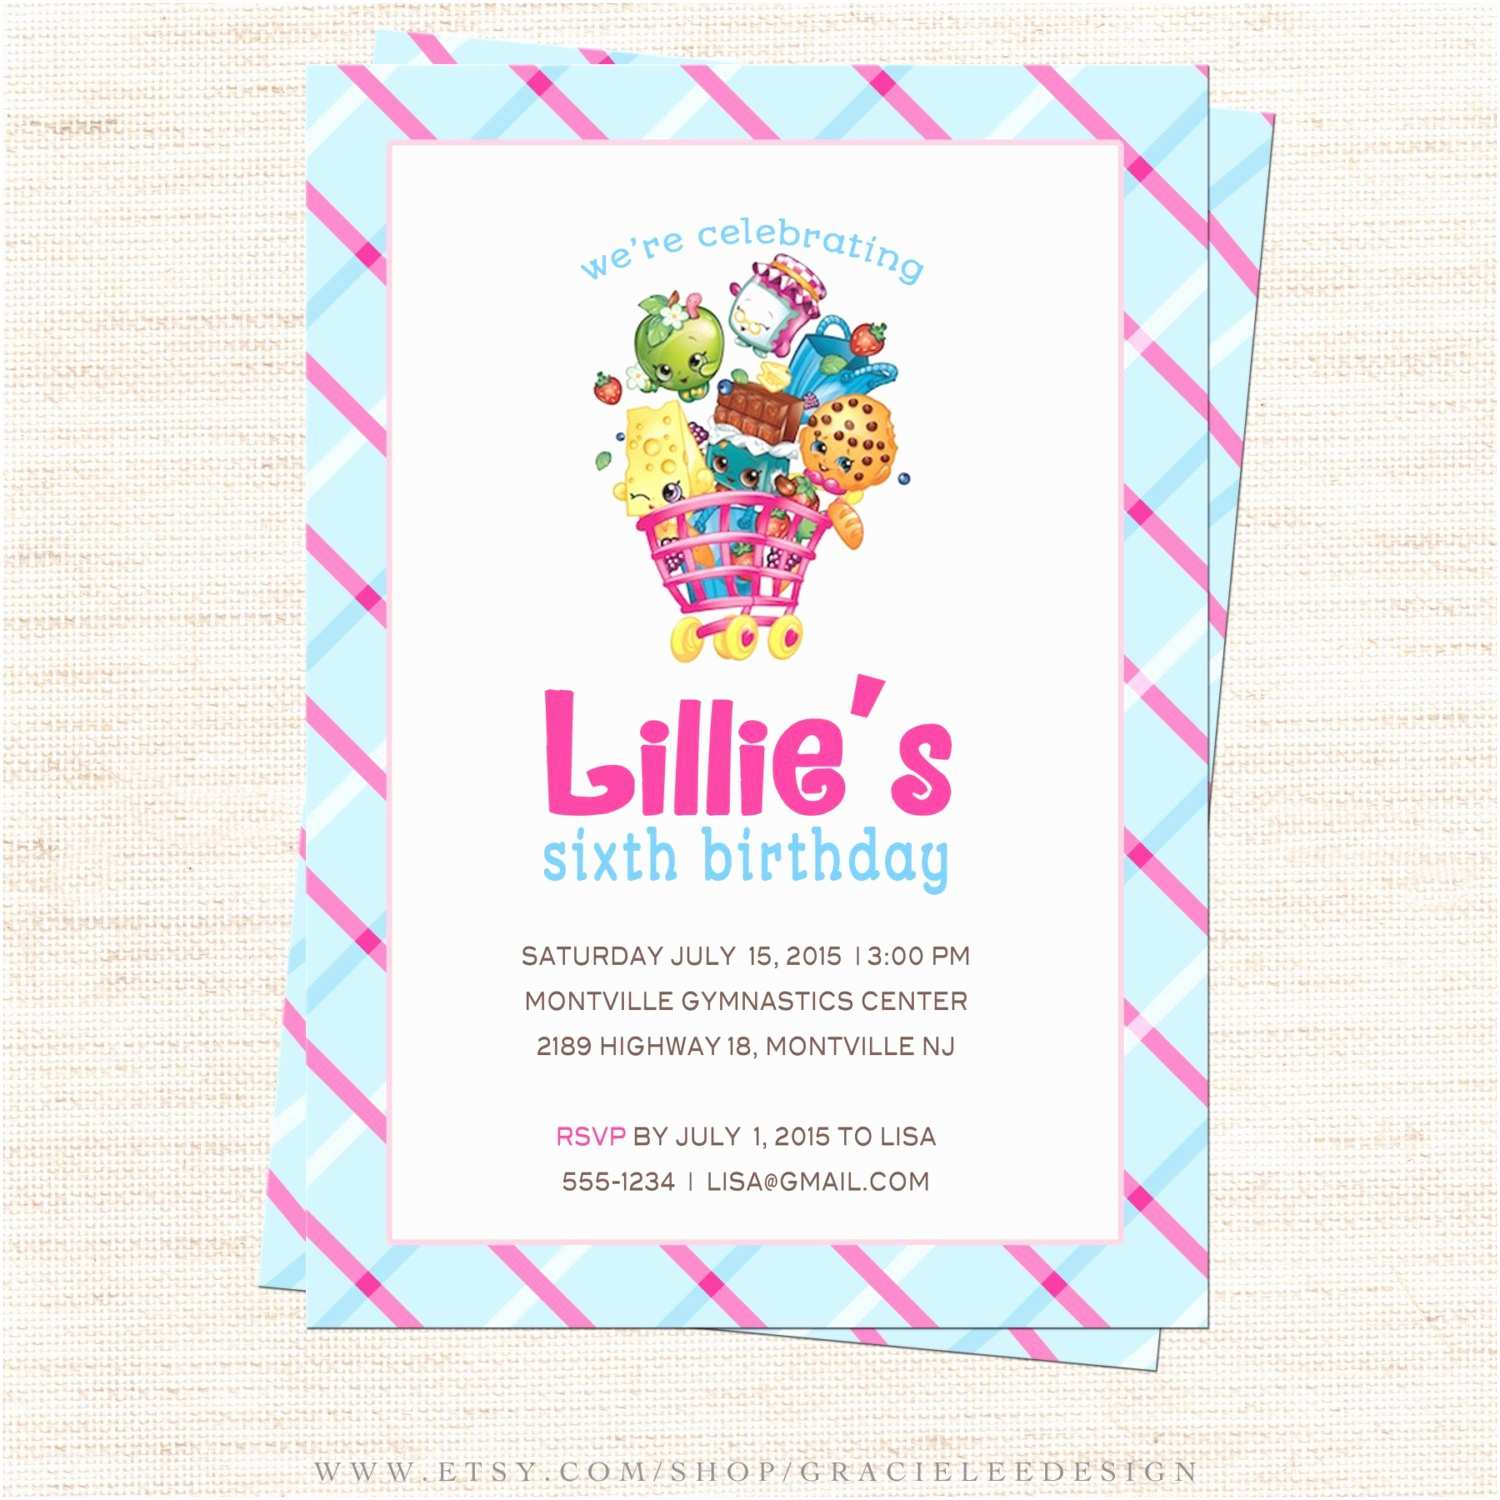 Shopkins Birthday Party Invitations Shopkins Birthday Party Invitation Shopkins by Gracieleedesign